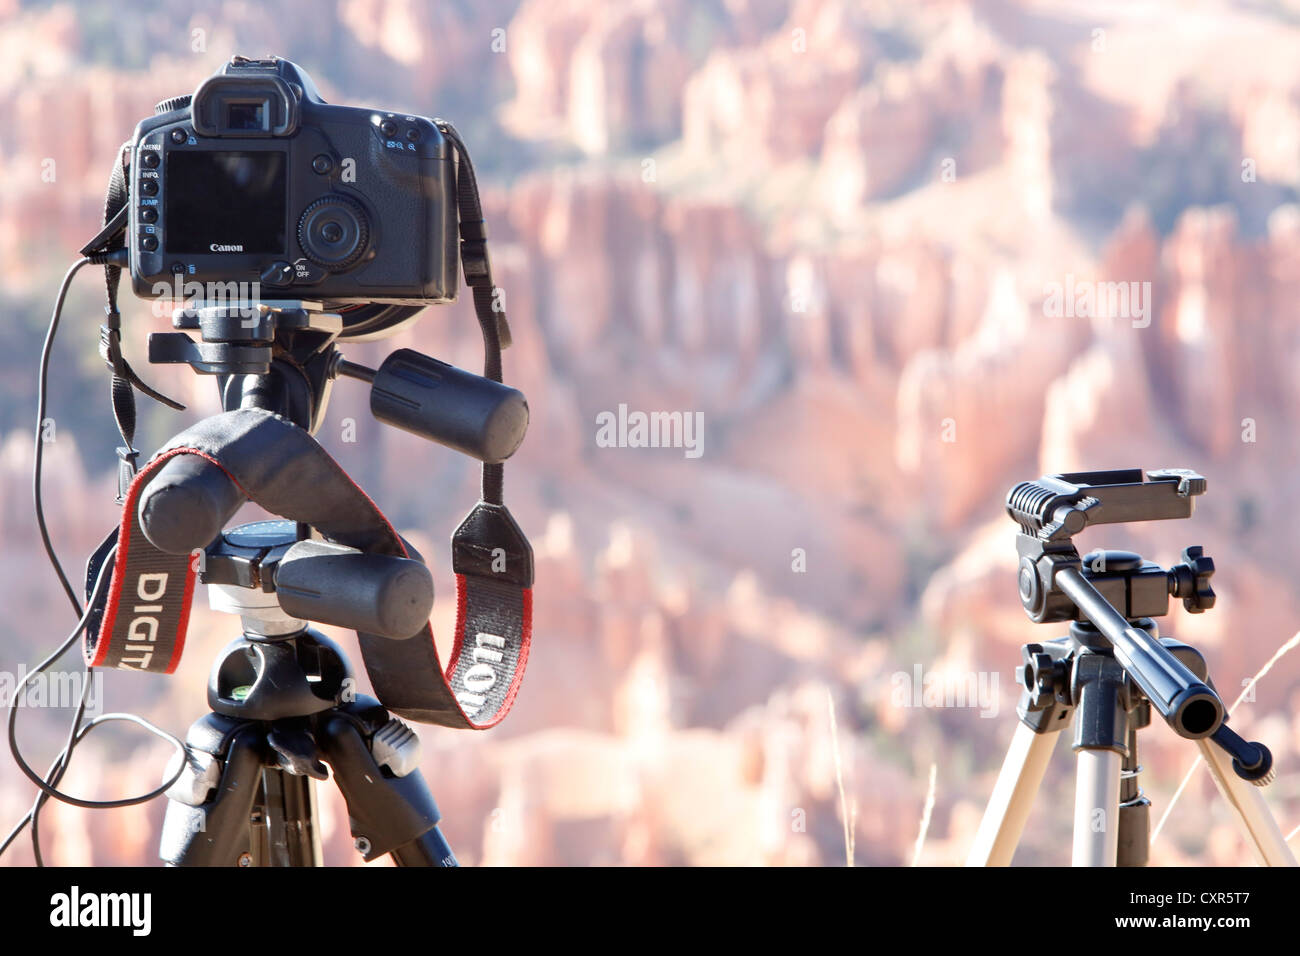 Photographer's setup in Bryce Canyon National Park, Utah, USA - Stock Image